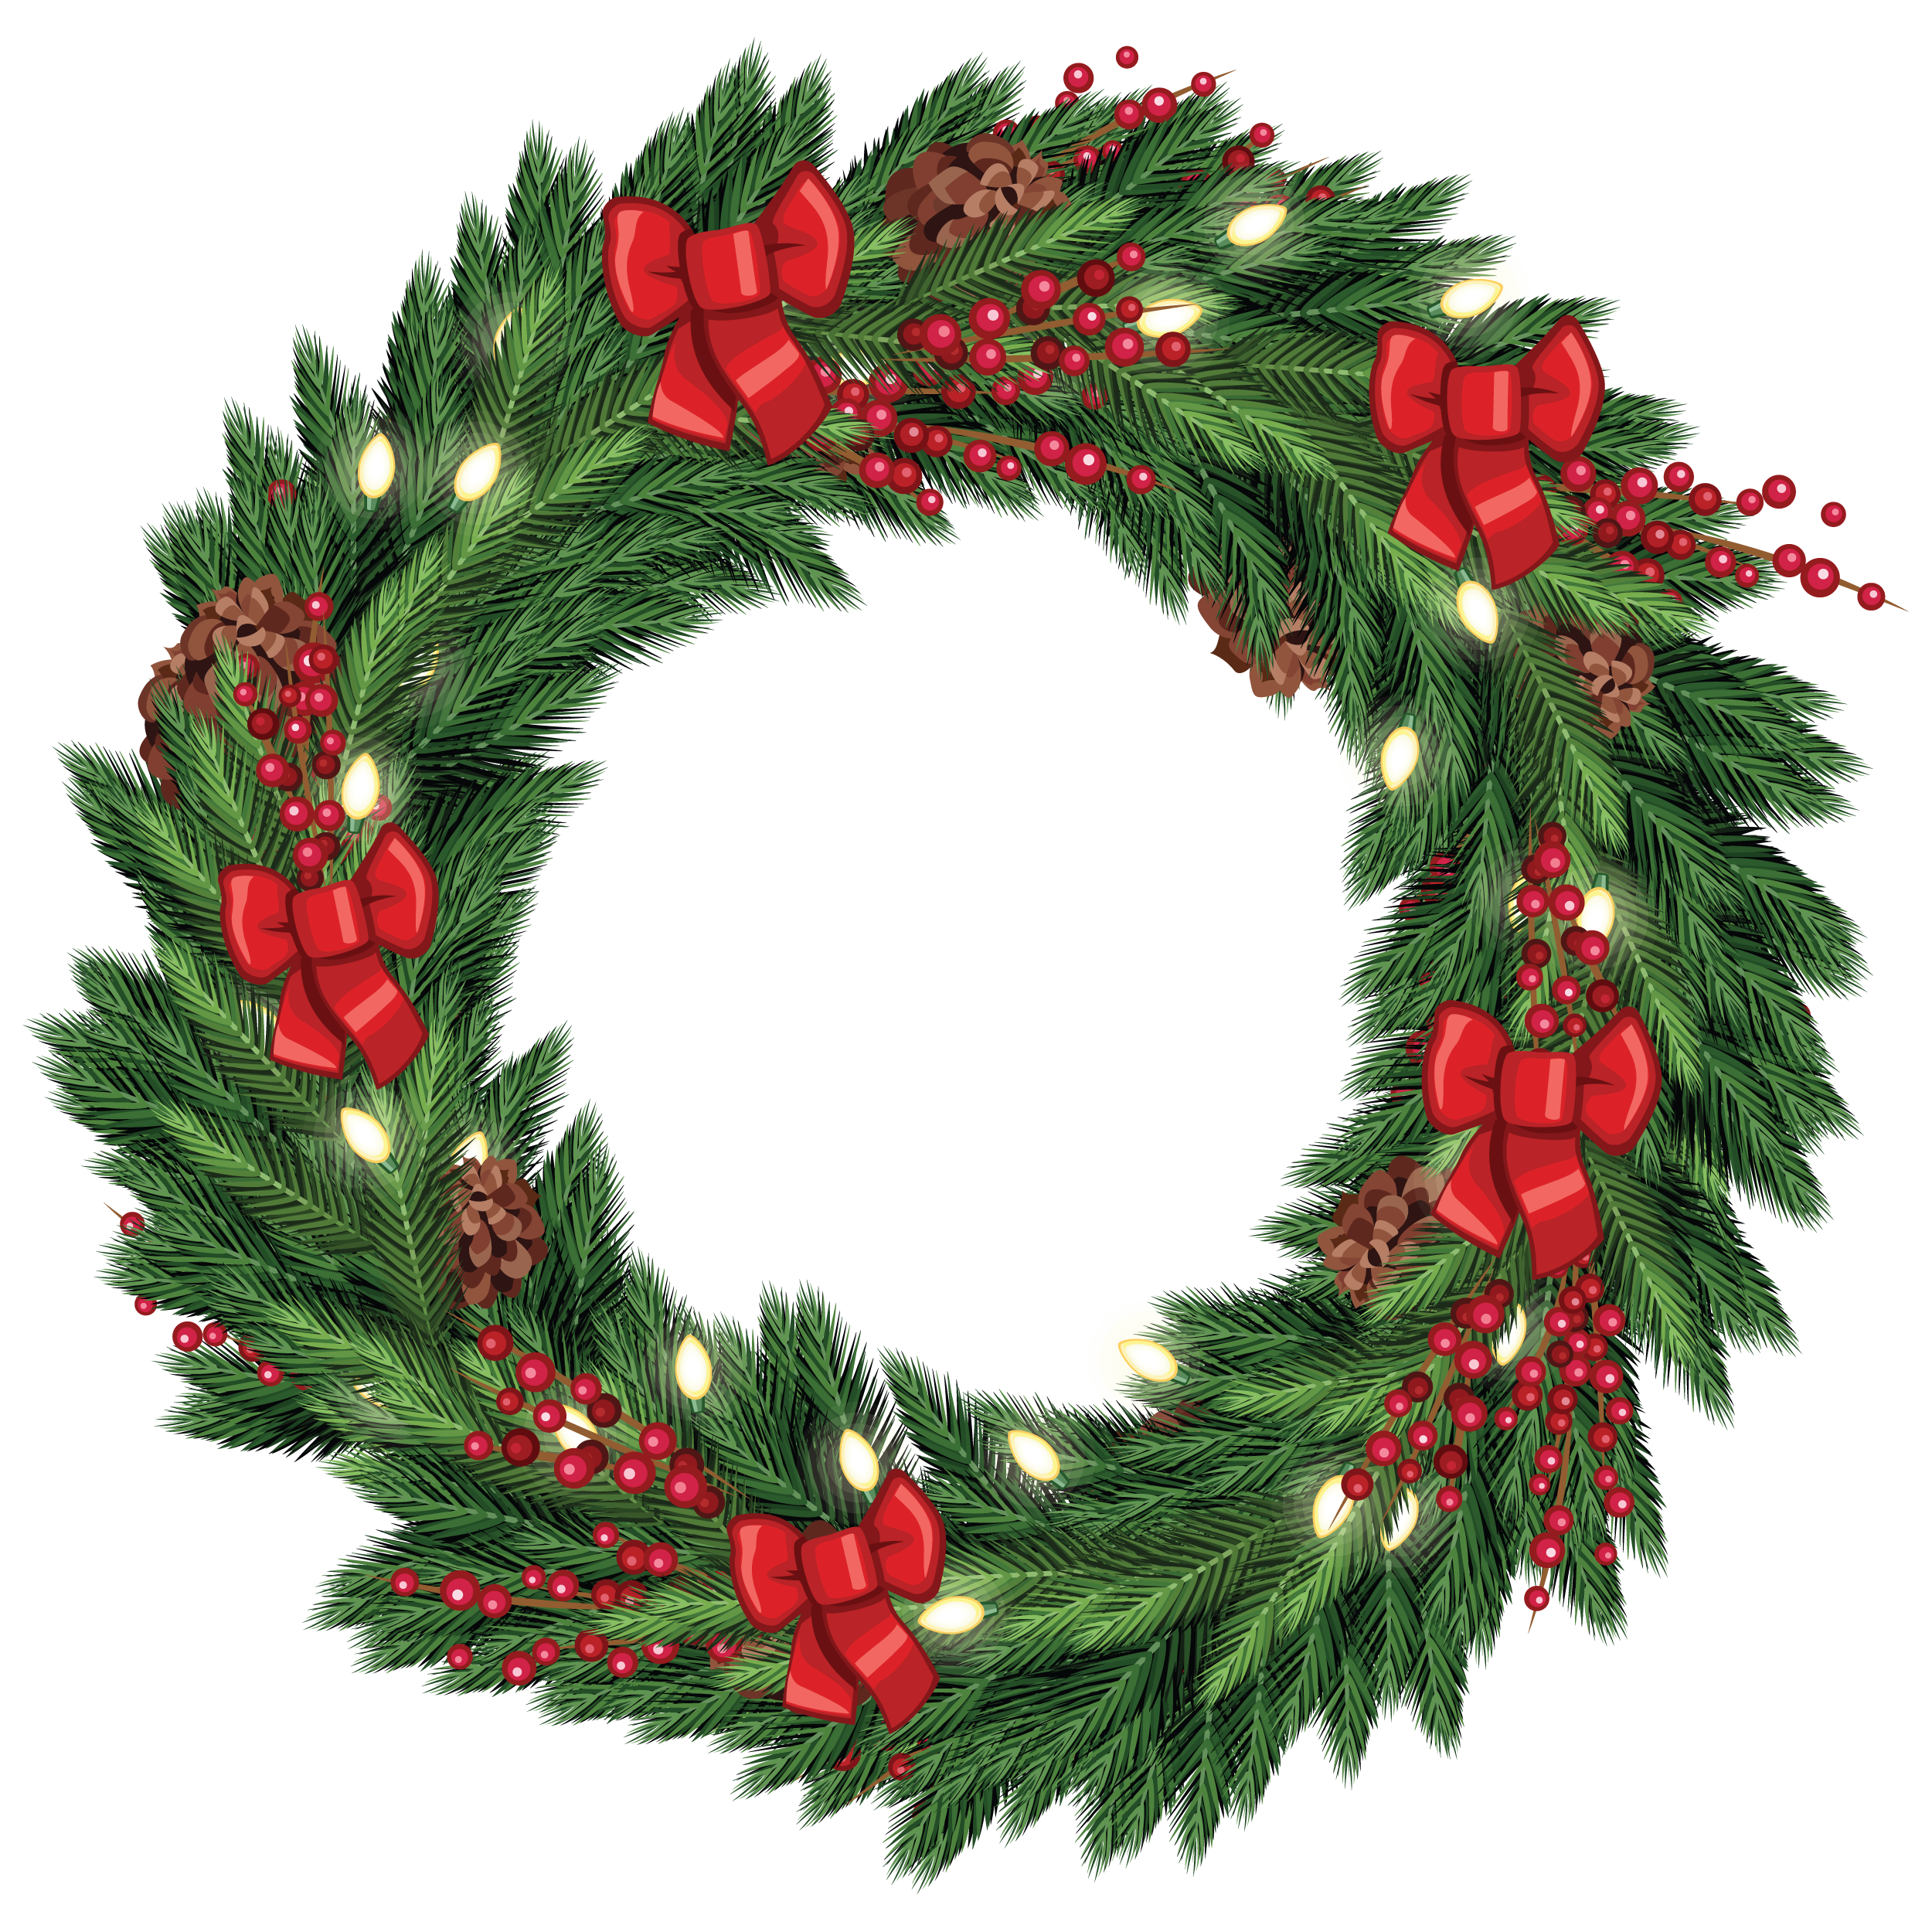 Lit garland png. Free christmas wreath graphic